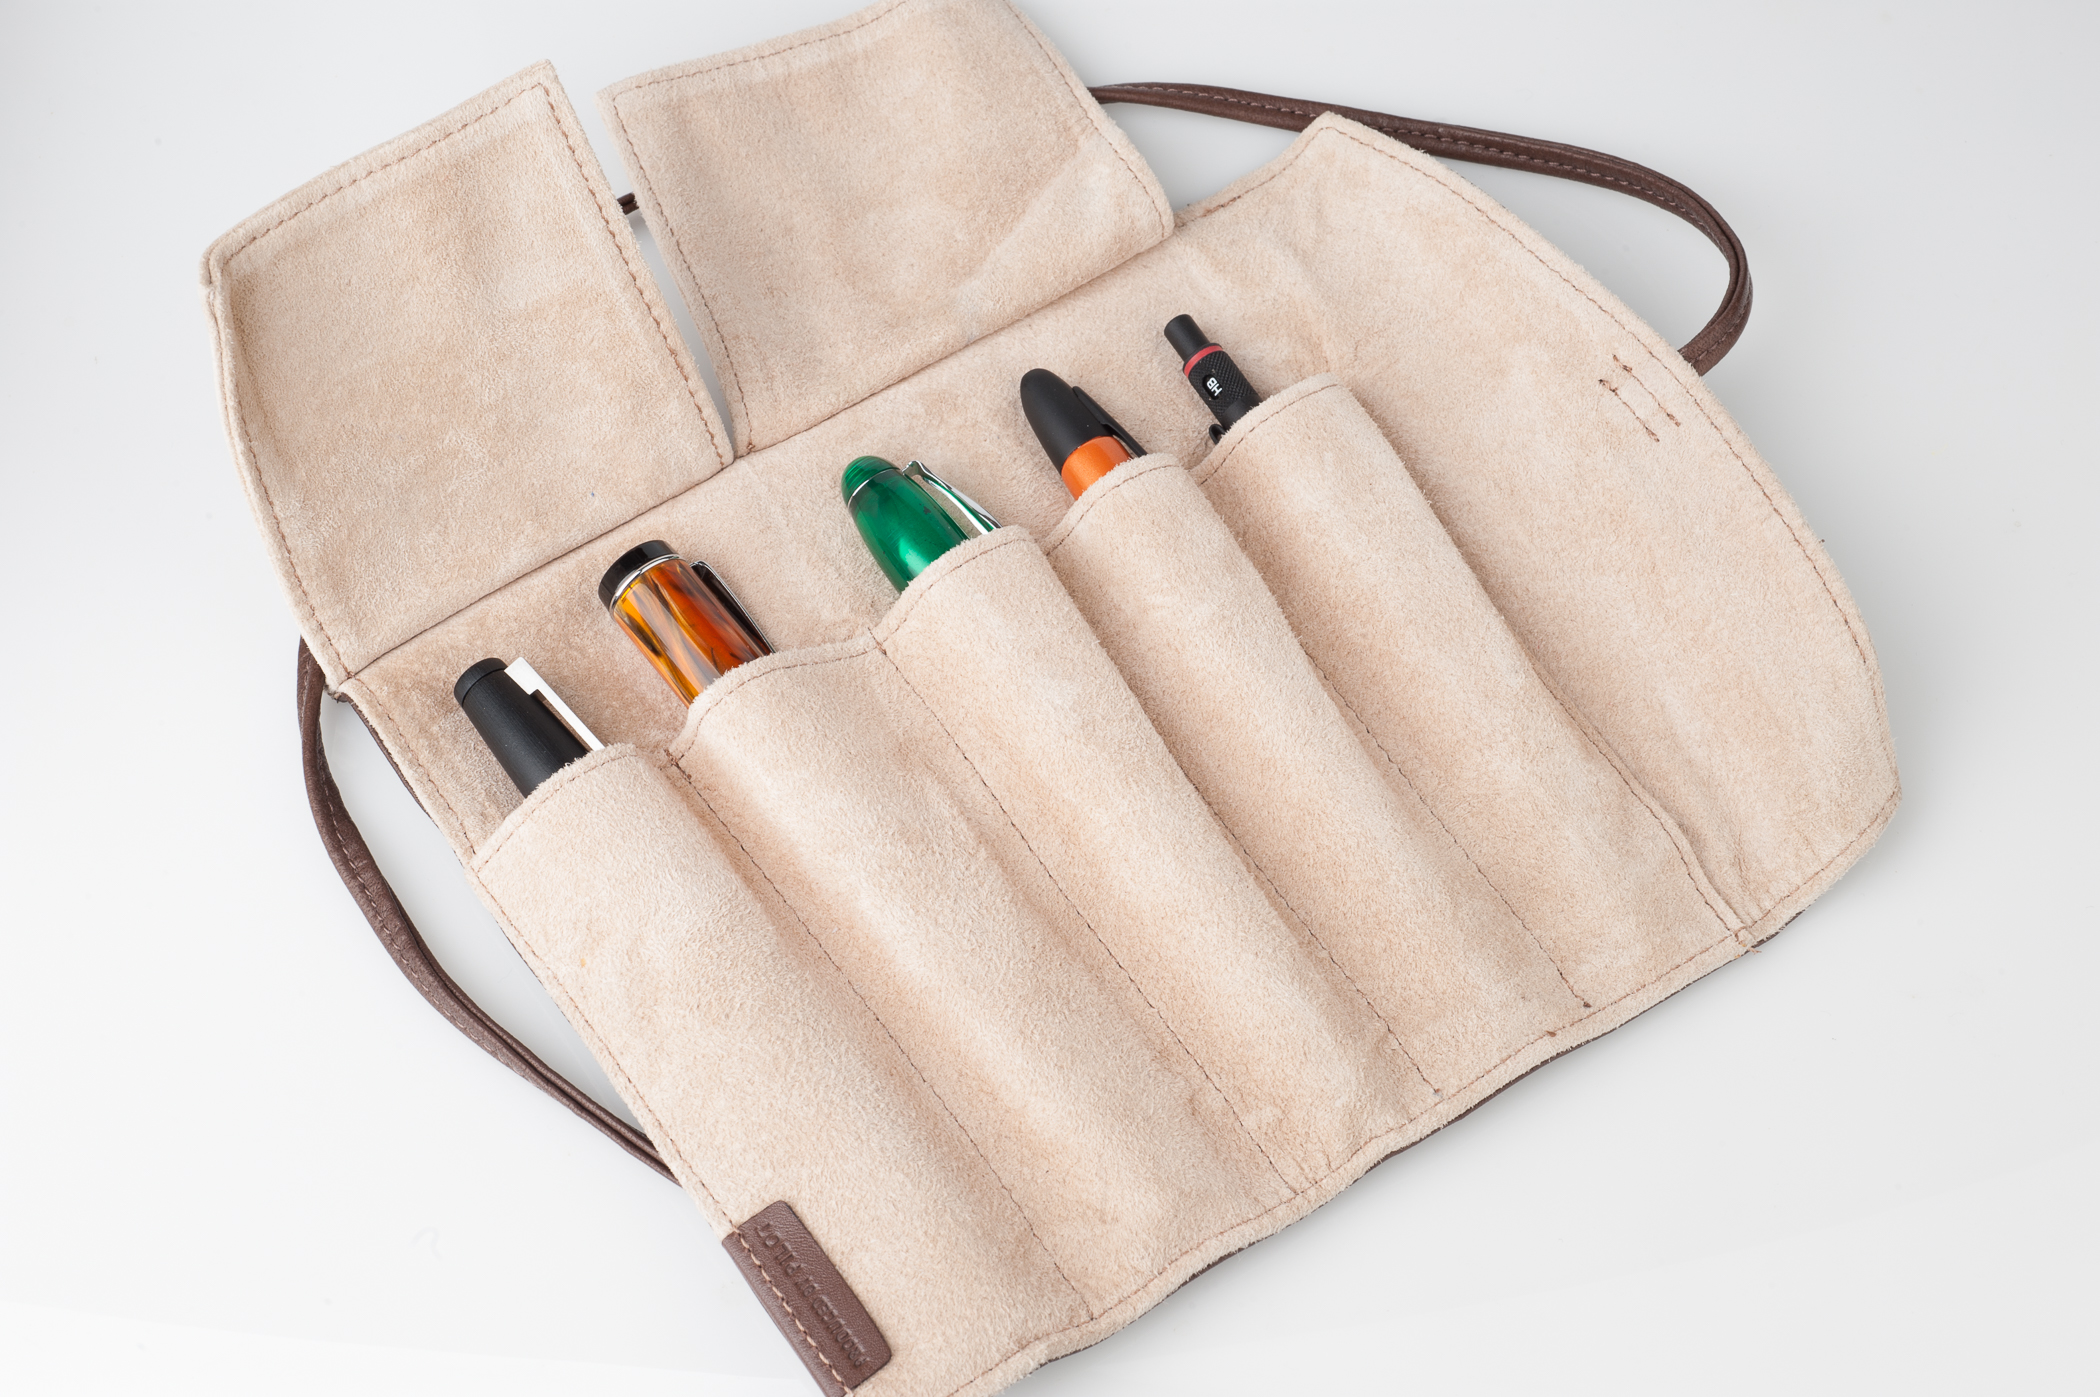 Pilot Pensemble Leather Pen Roll storing fountain pens and mechanical pencils